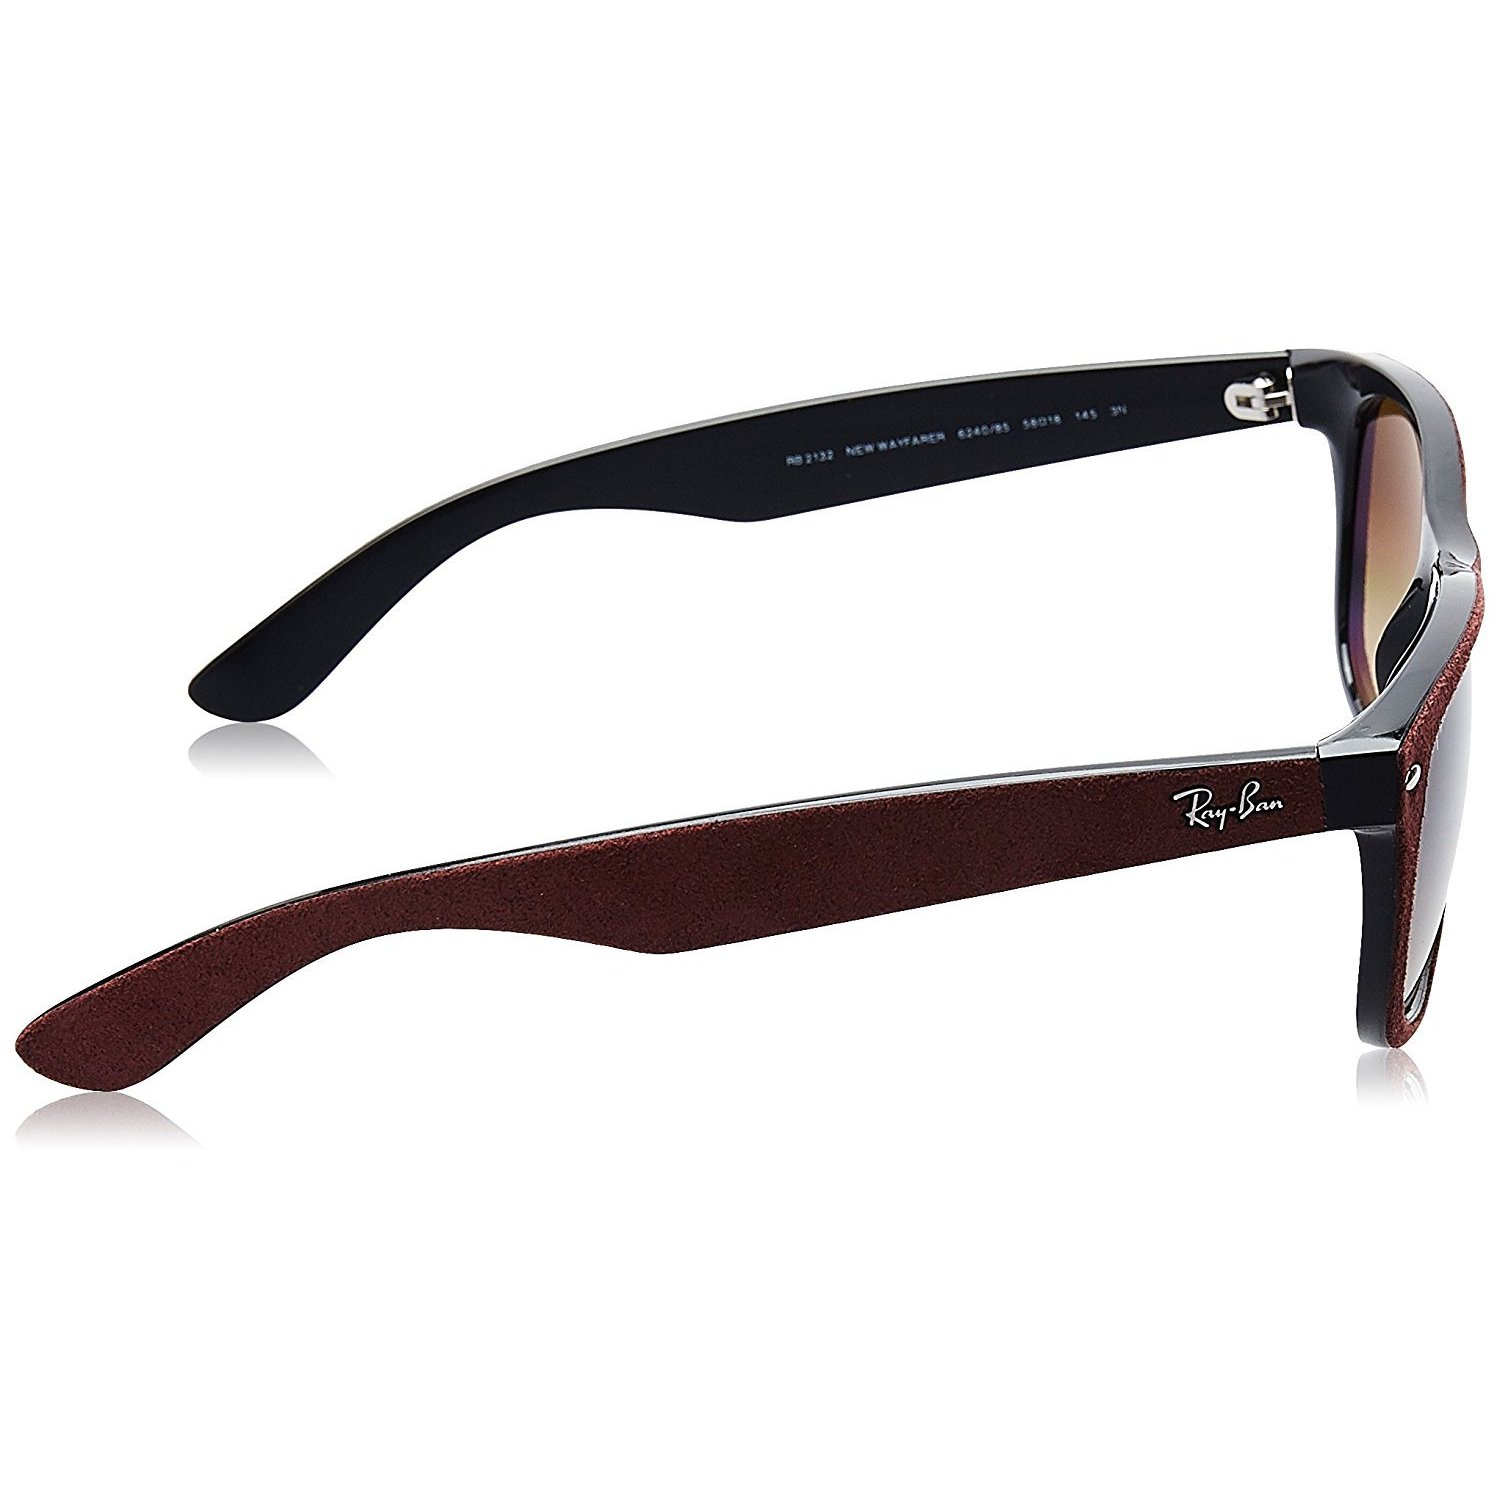 7bb89752434 Shop Ray-Ban New Wayfarer RB2132 Unisex Bordeaux Frame Brown Gradient 55mm  Lens Sunglasses - Free Shipping Today - Overstock - 15371415